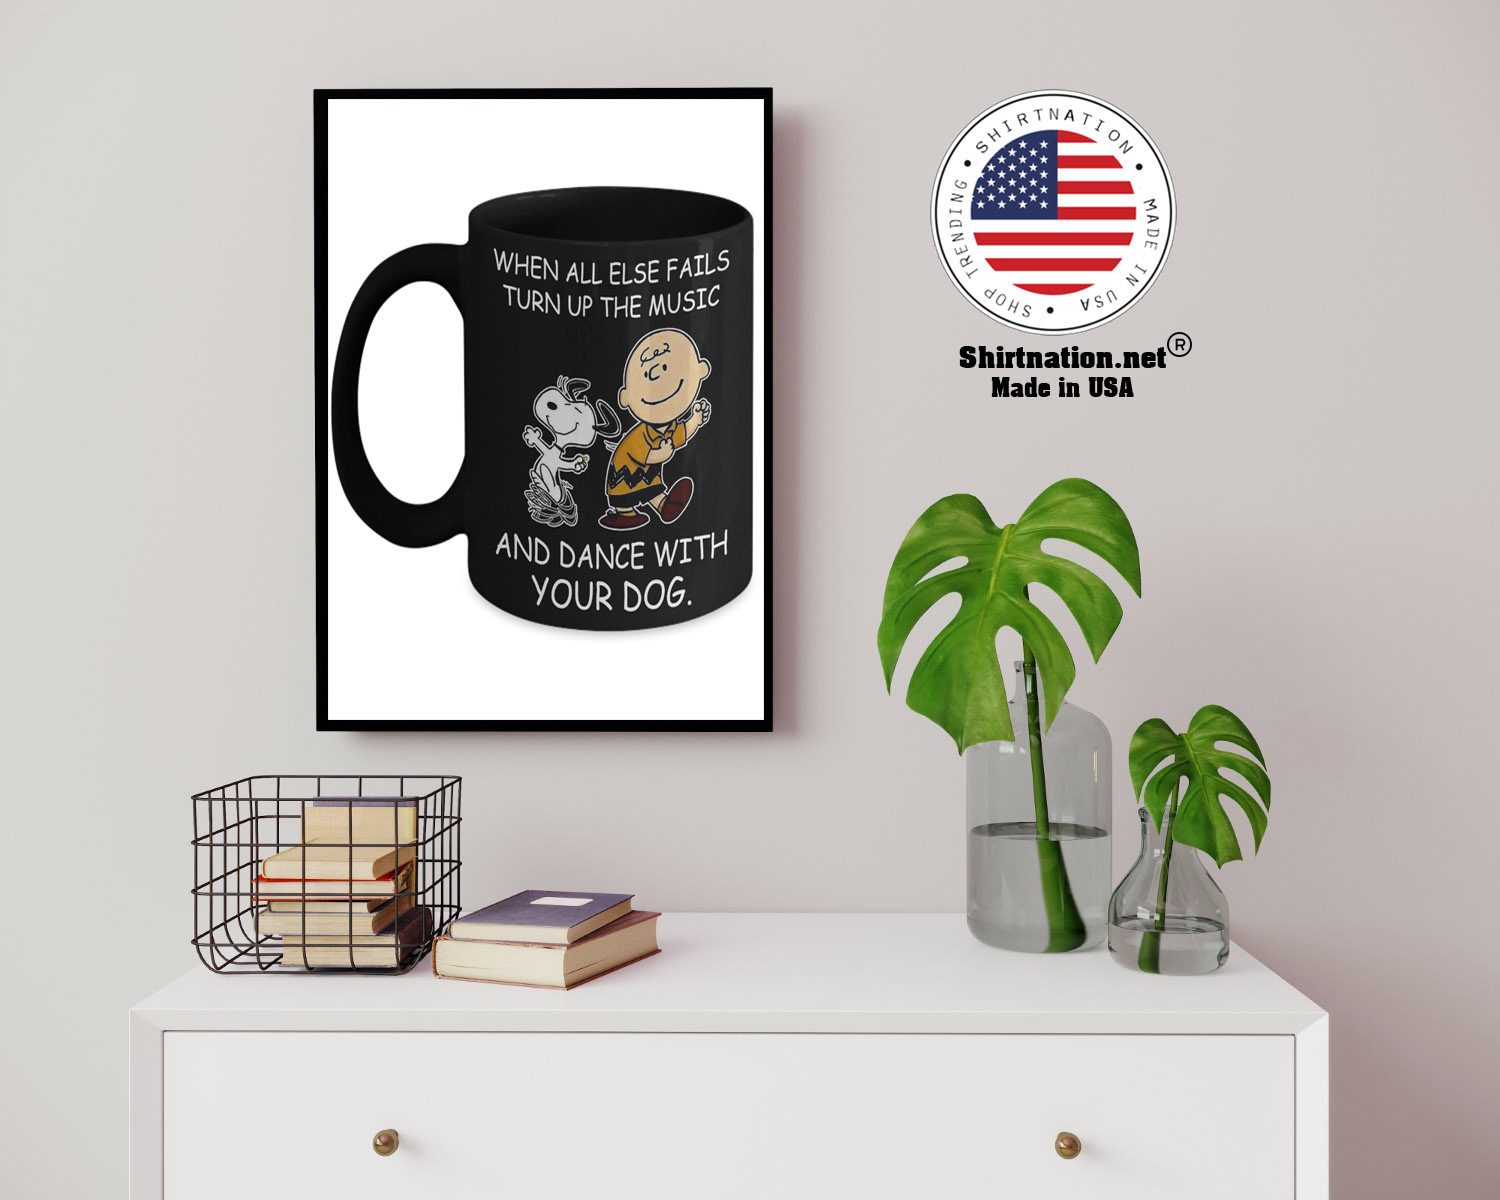 Snoopy and Charlie Brown When all else fails turn up the music and dance with your dog mug 13